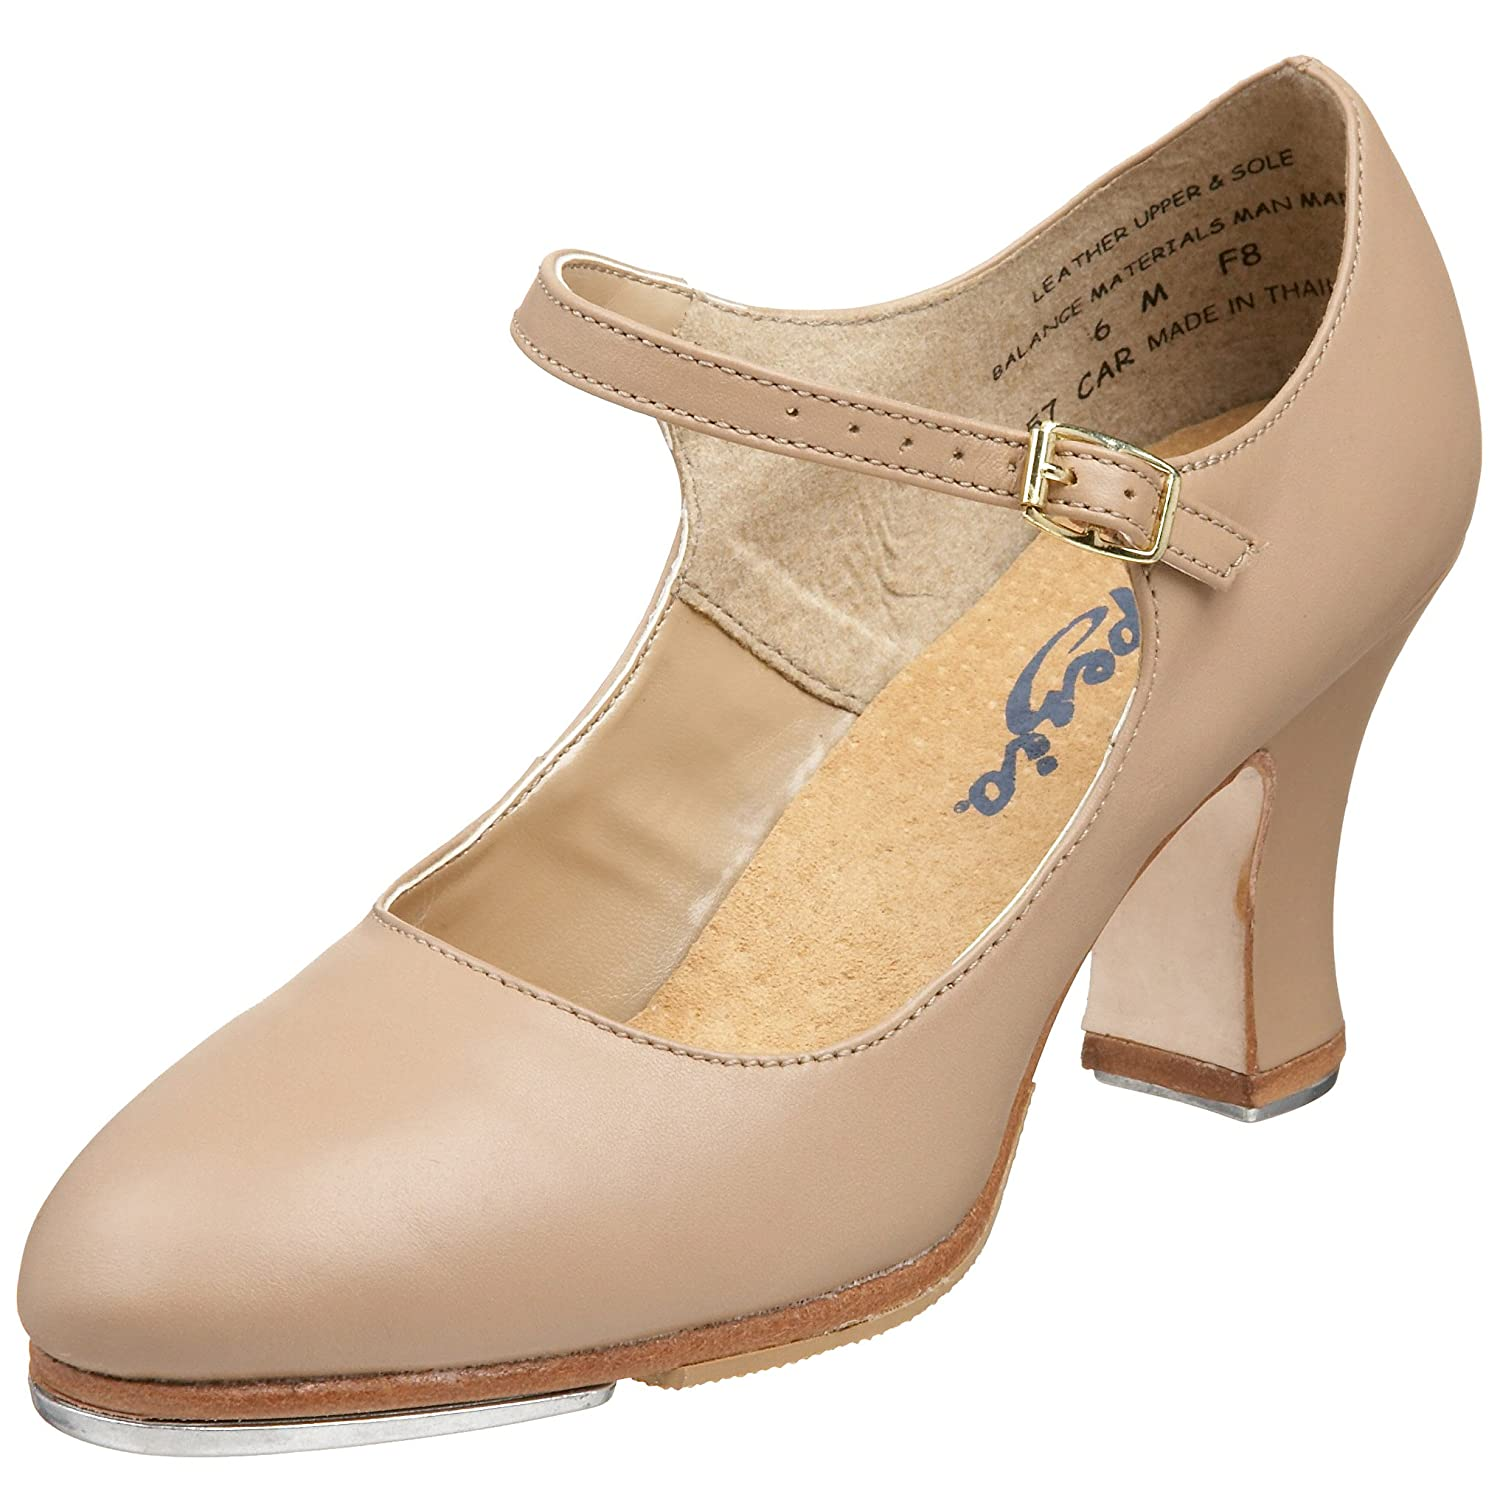 1950s Style Shoes | Heels, Flats, Saddle Shoes Capezio Womens 657 Manhattan Xtreme Tap Shoe $82.95 AT vintagedancer.com